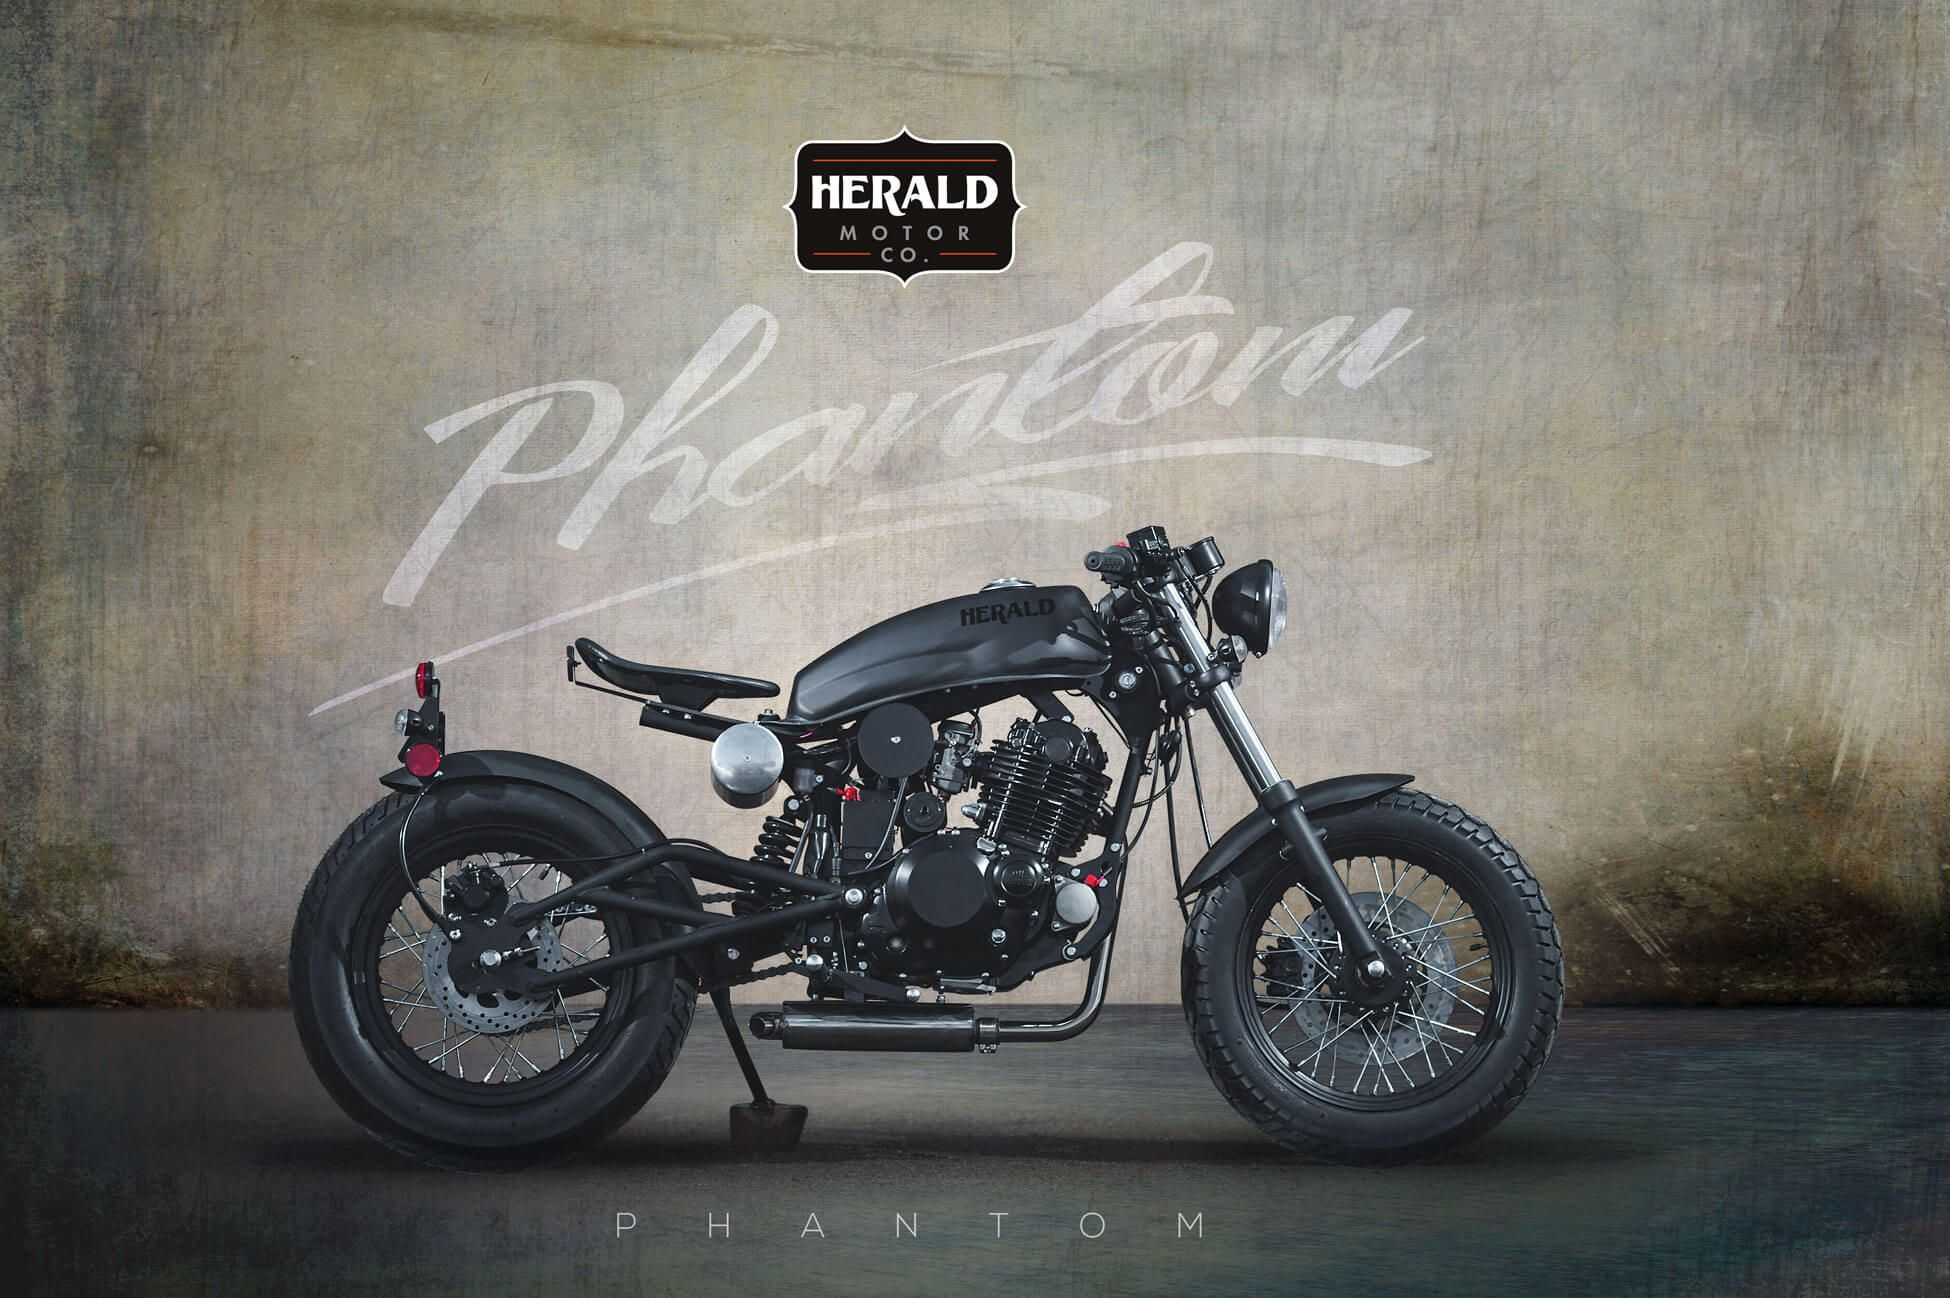 Styled around the Bobber, the Phantom is available in limited quantities and features a distinctive look that is sure to turn heads.